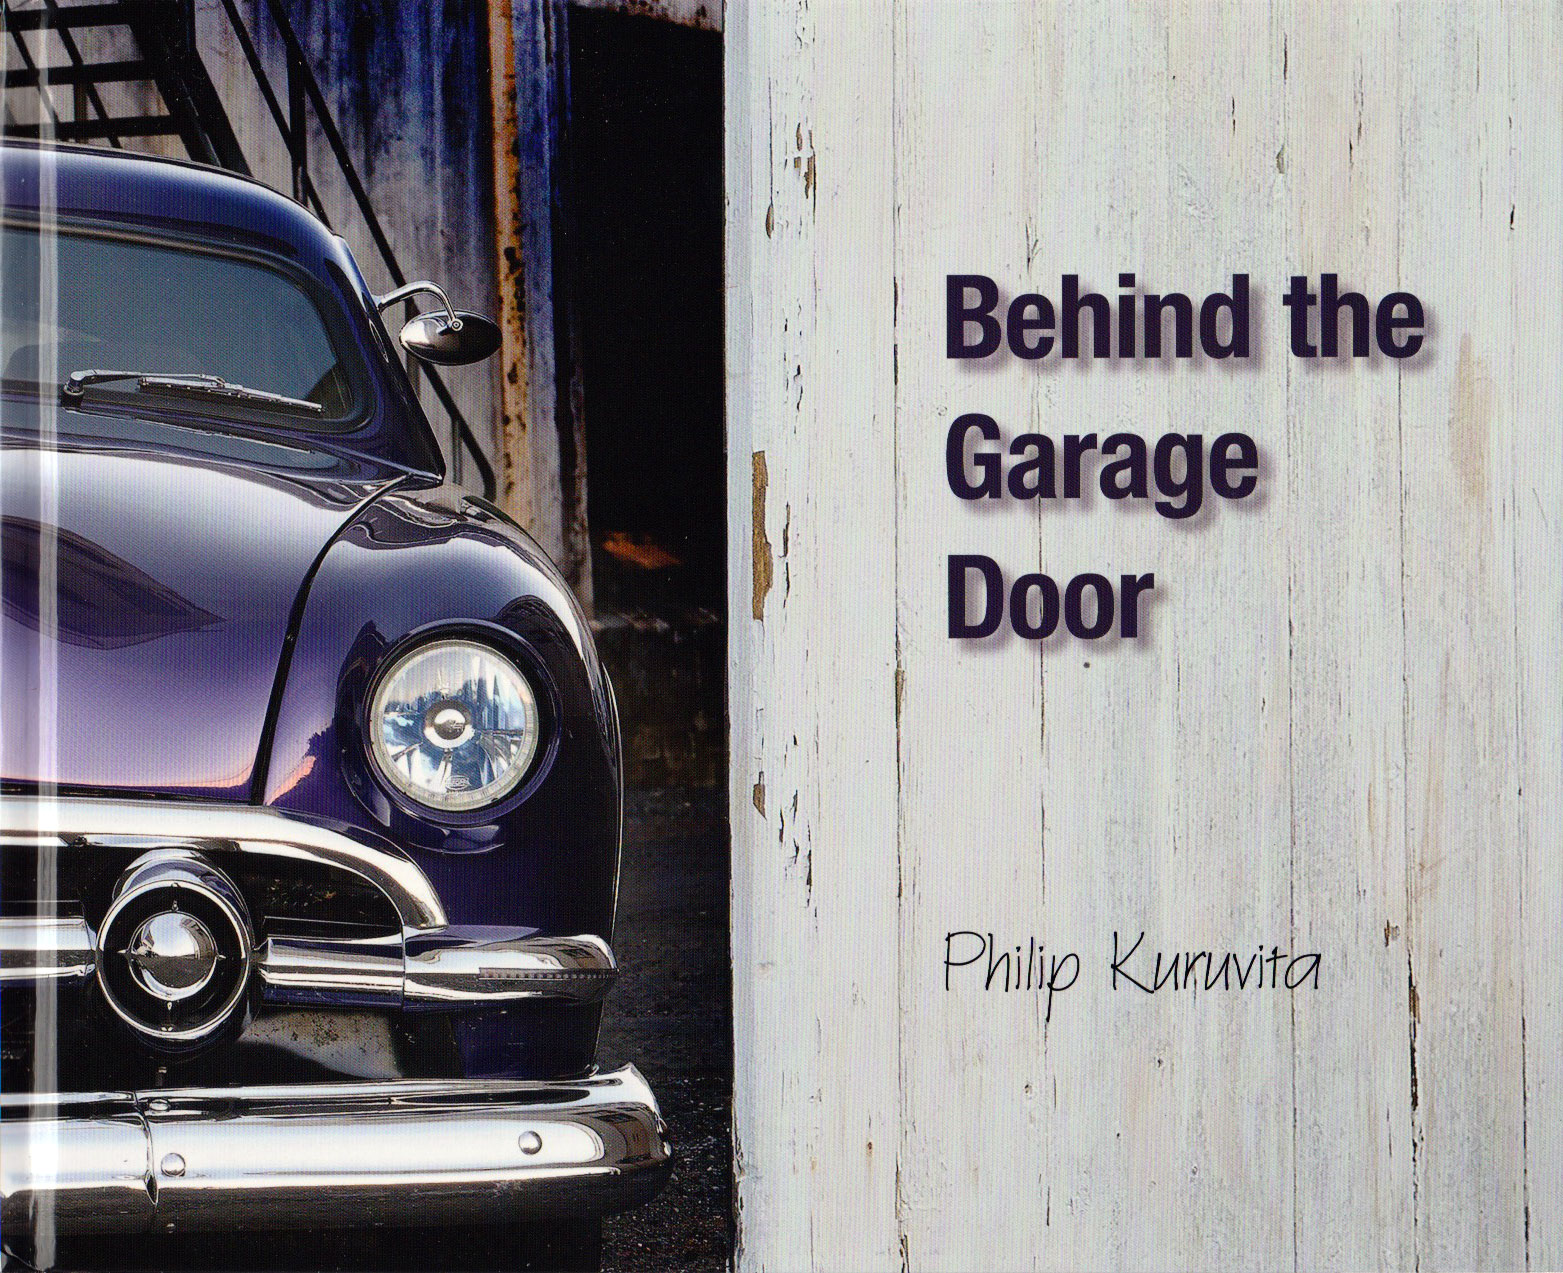 Behind the Garage Door